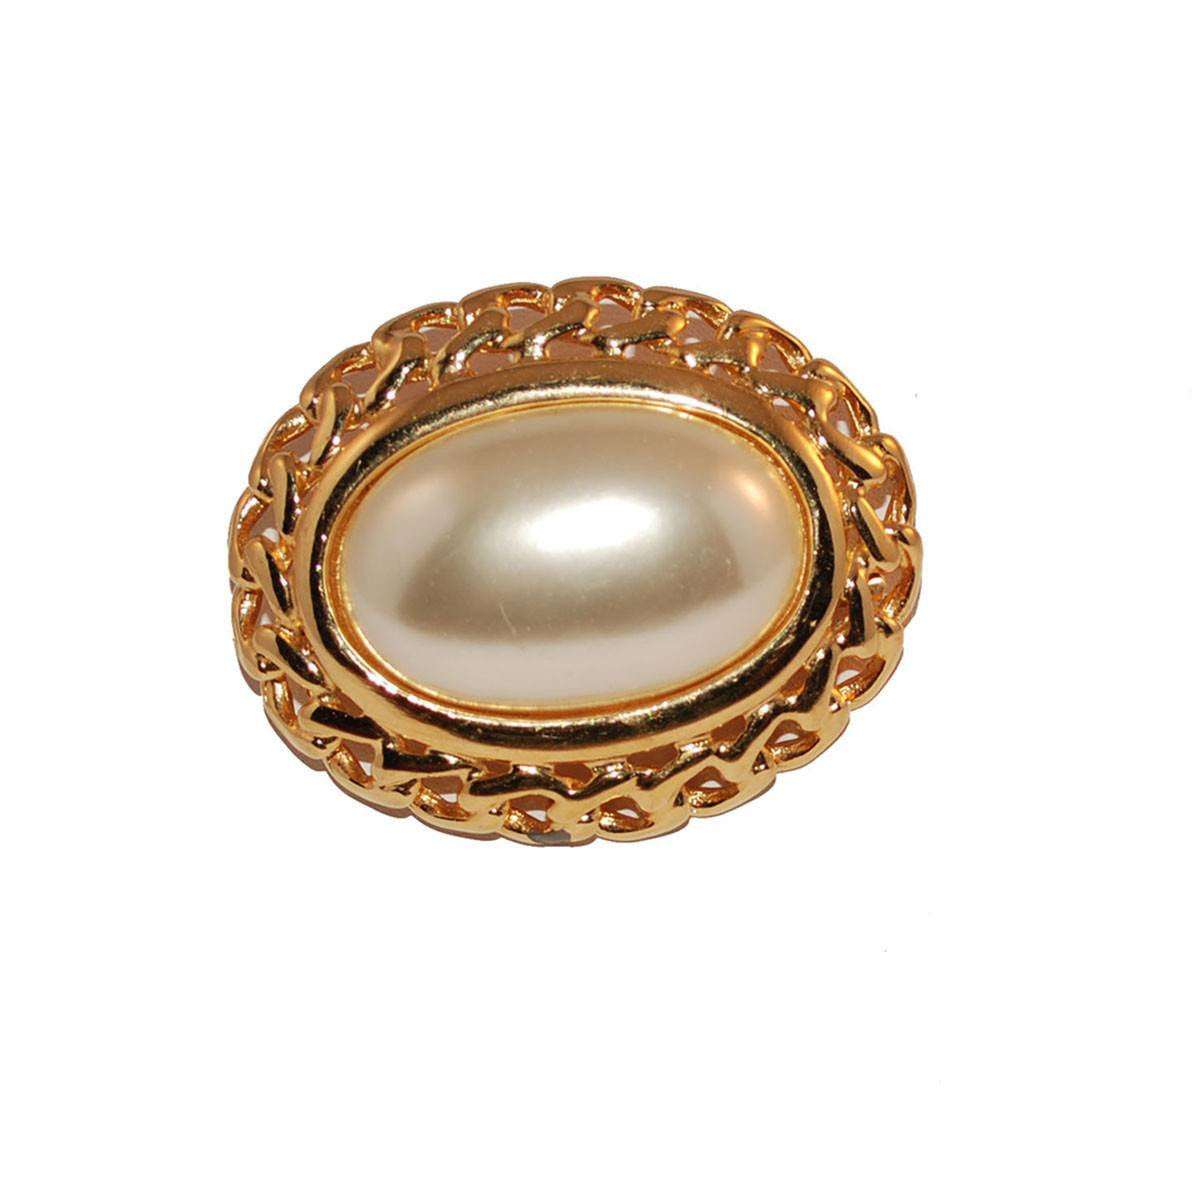 1970s Napier Mabe Pearl Brooch